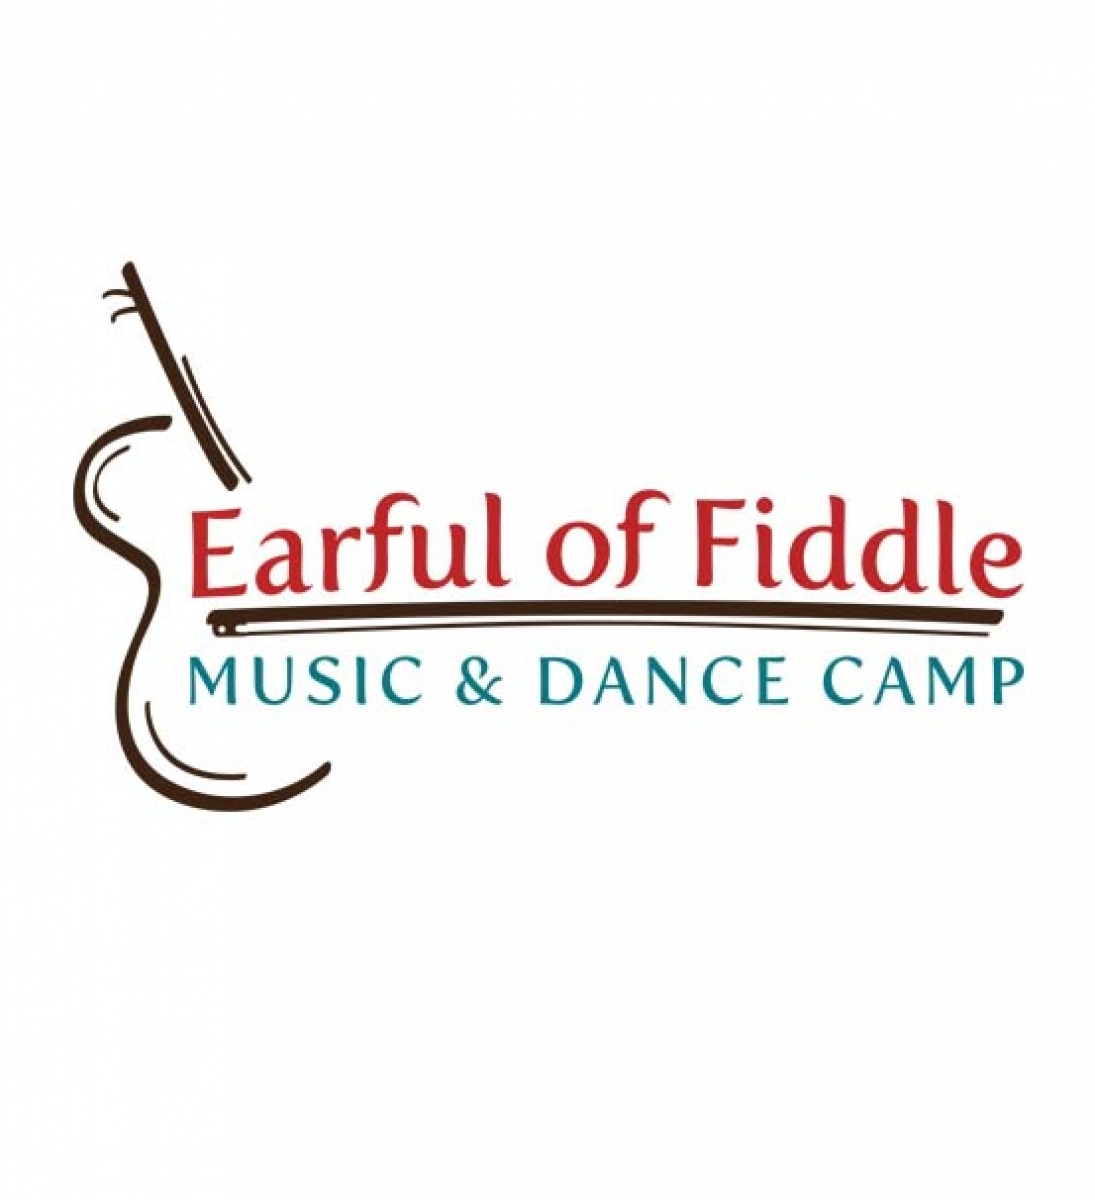 Earful of Fiddle